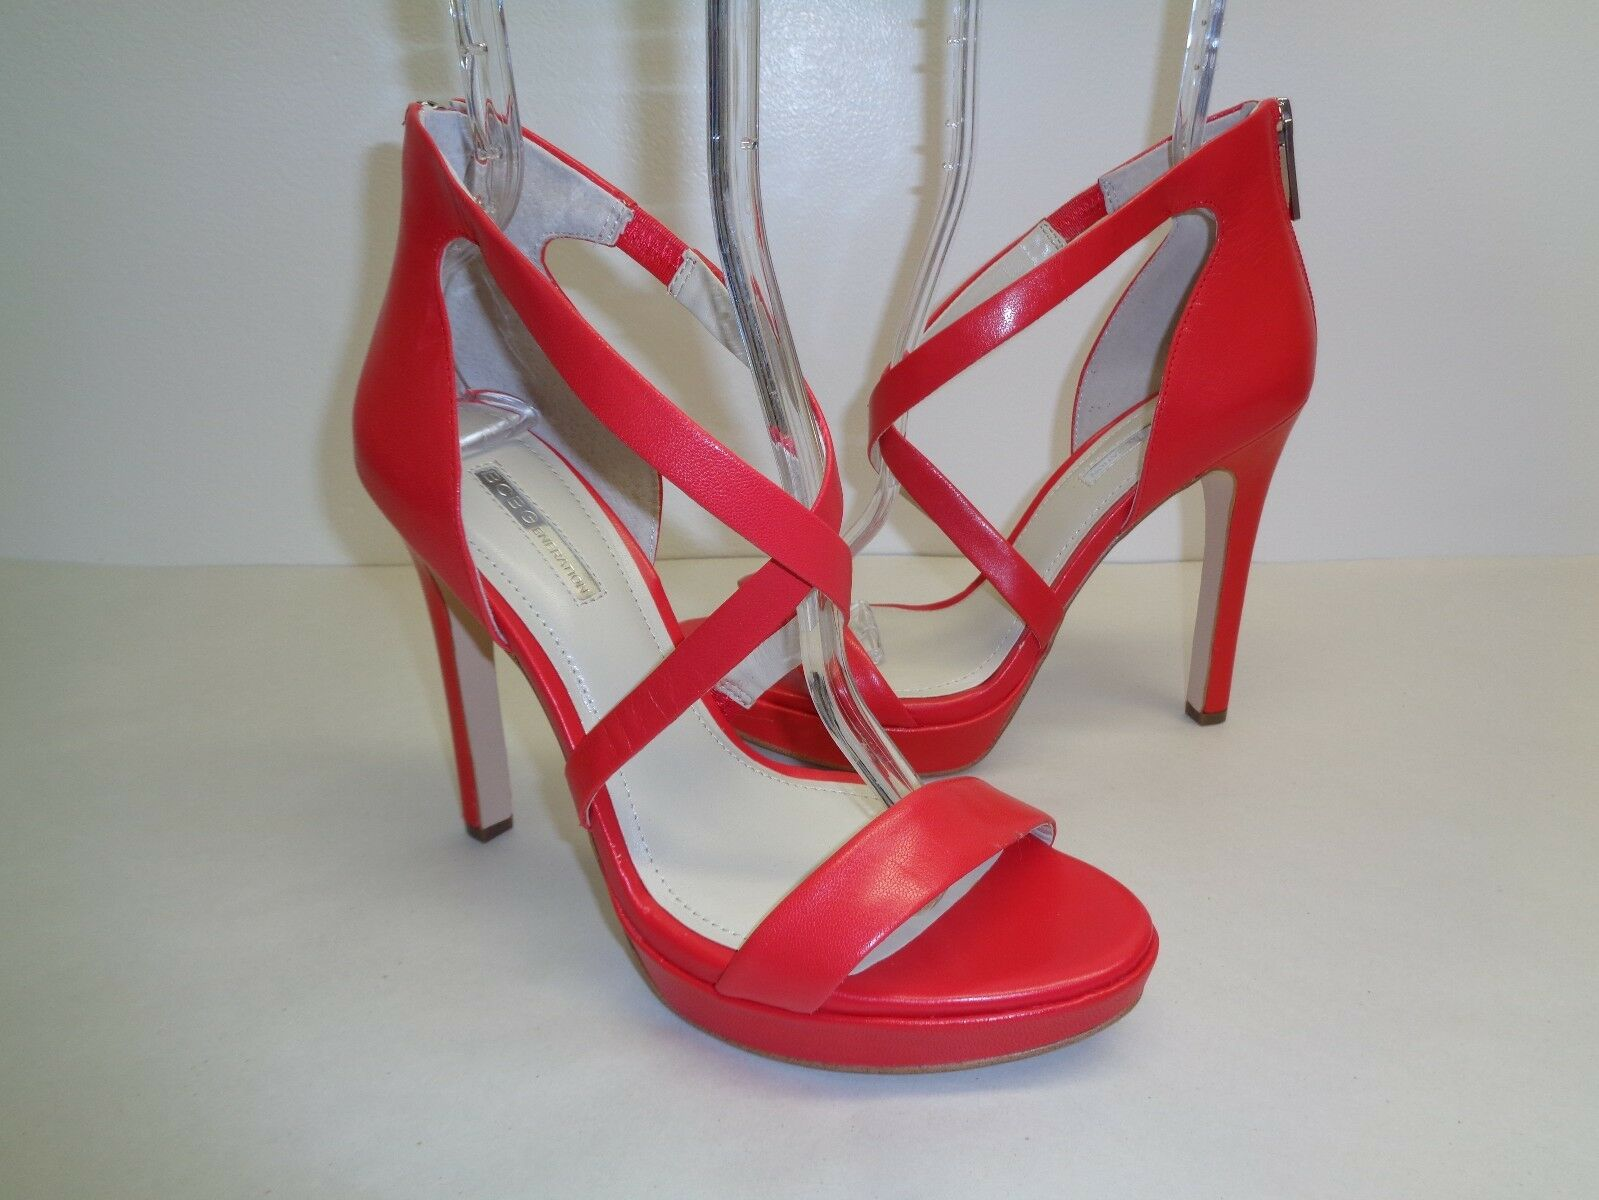 BCBGeneration BCBG Size 9.5 9.5 Size M GIDGET Passion Pelle Sandals New Donna Shoes 7dbb18